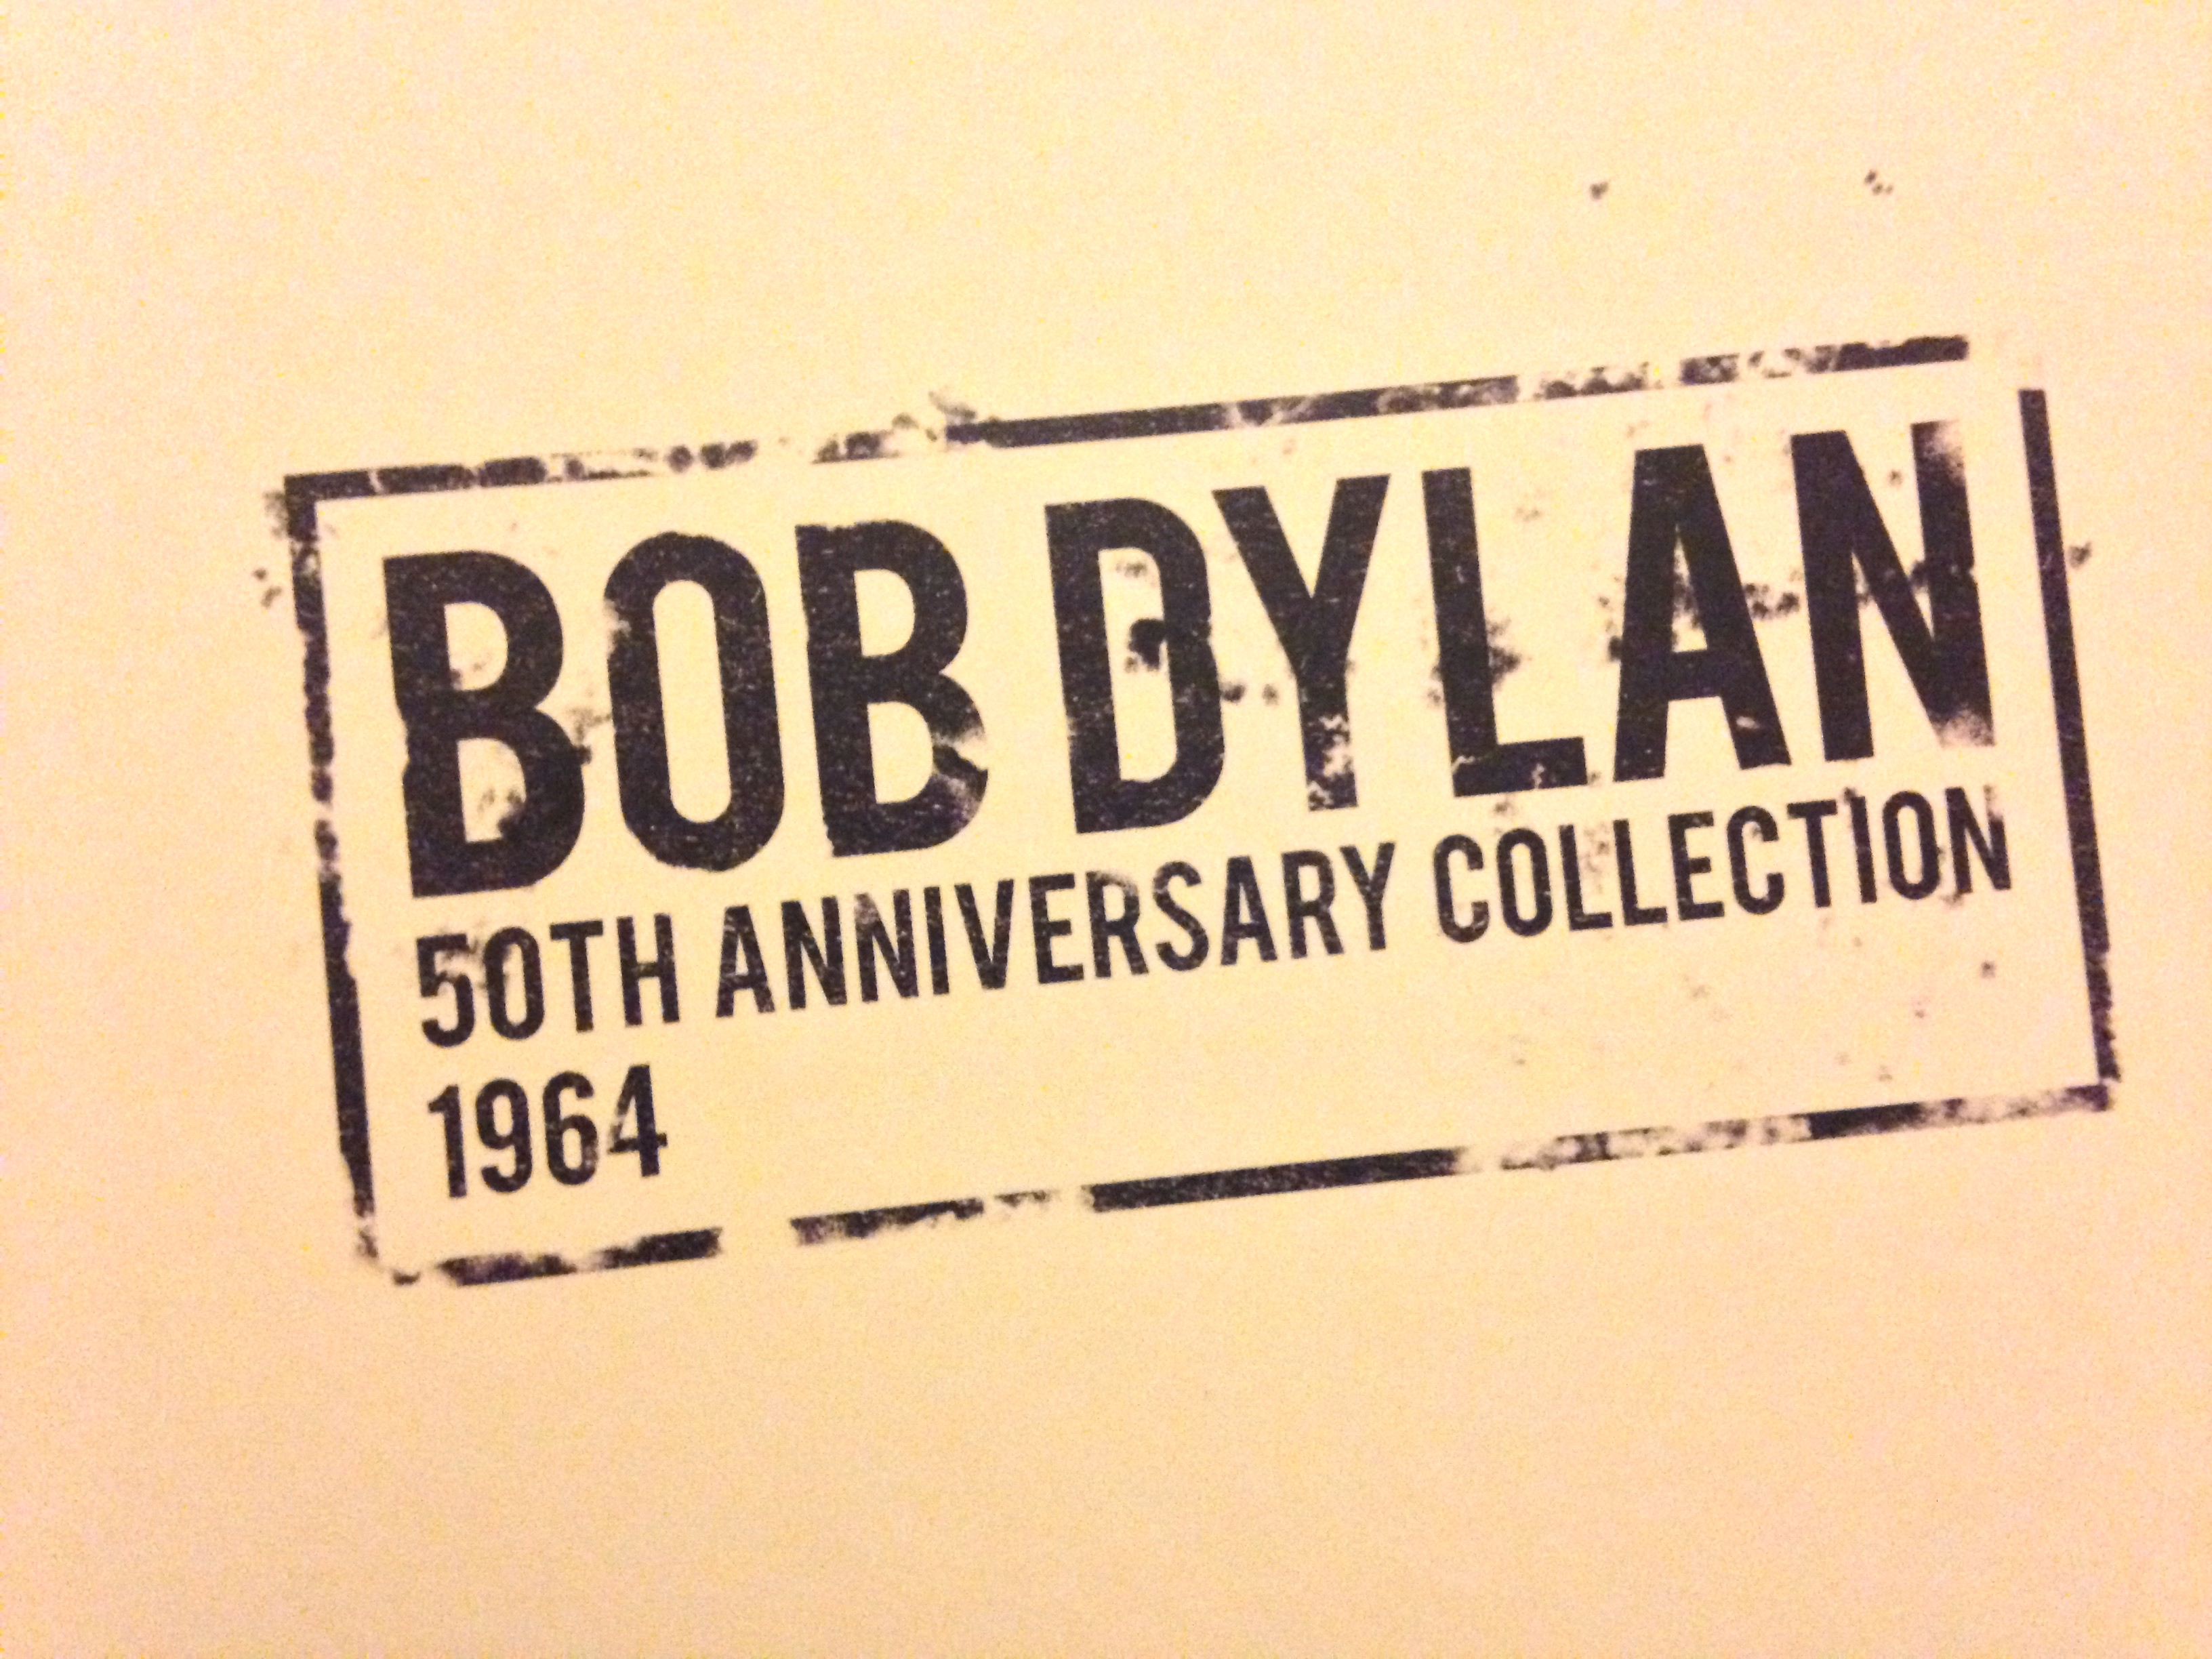 the 50th anniversary collection 1964